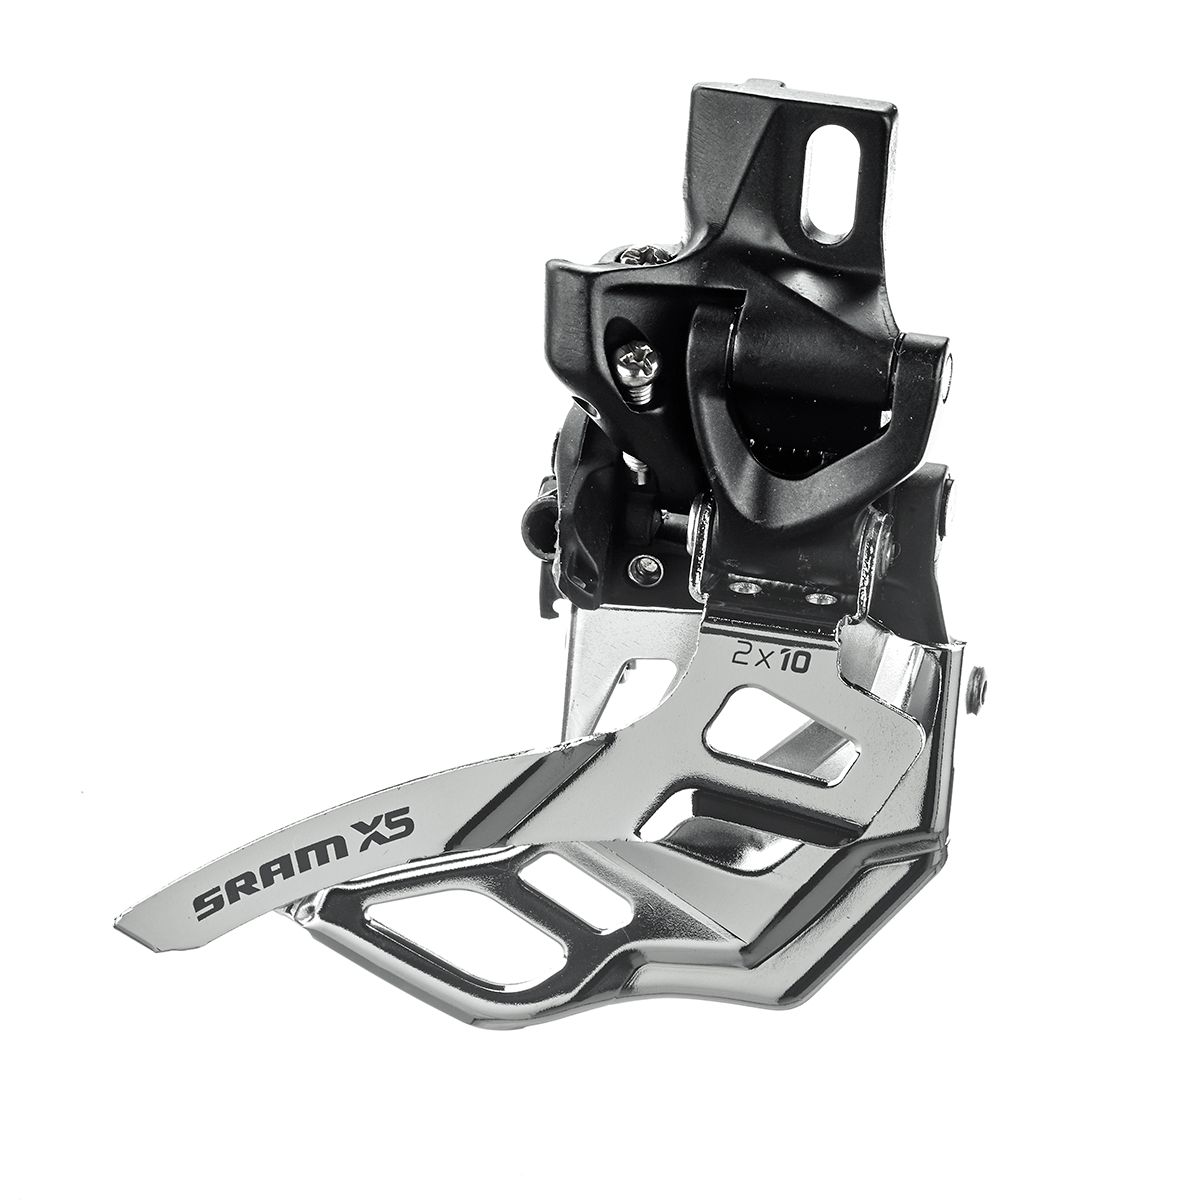 X5 Front Derailleur High Direct Mount 2x10 Dual Pull